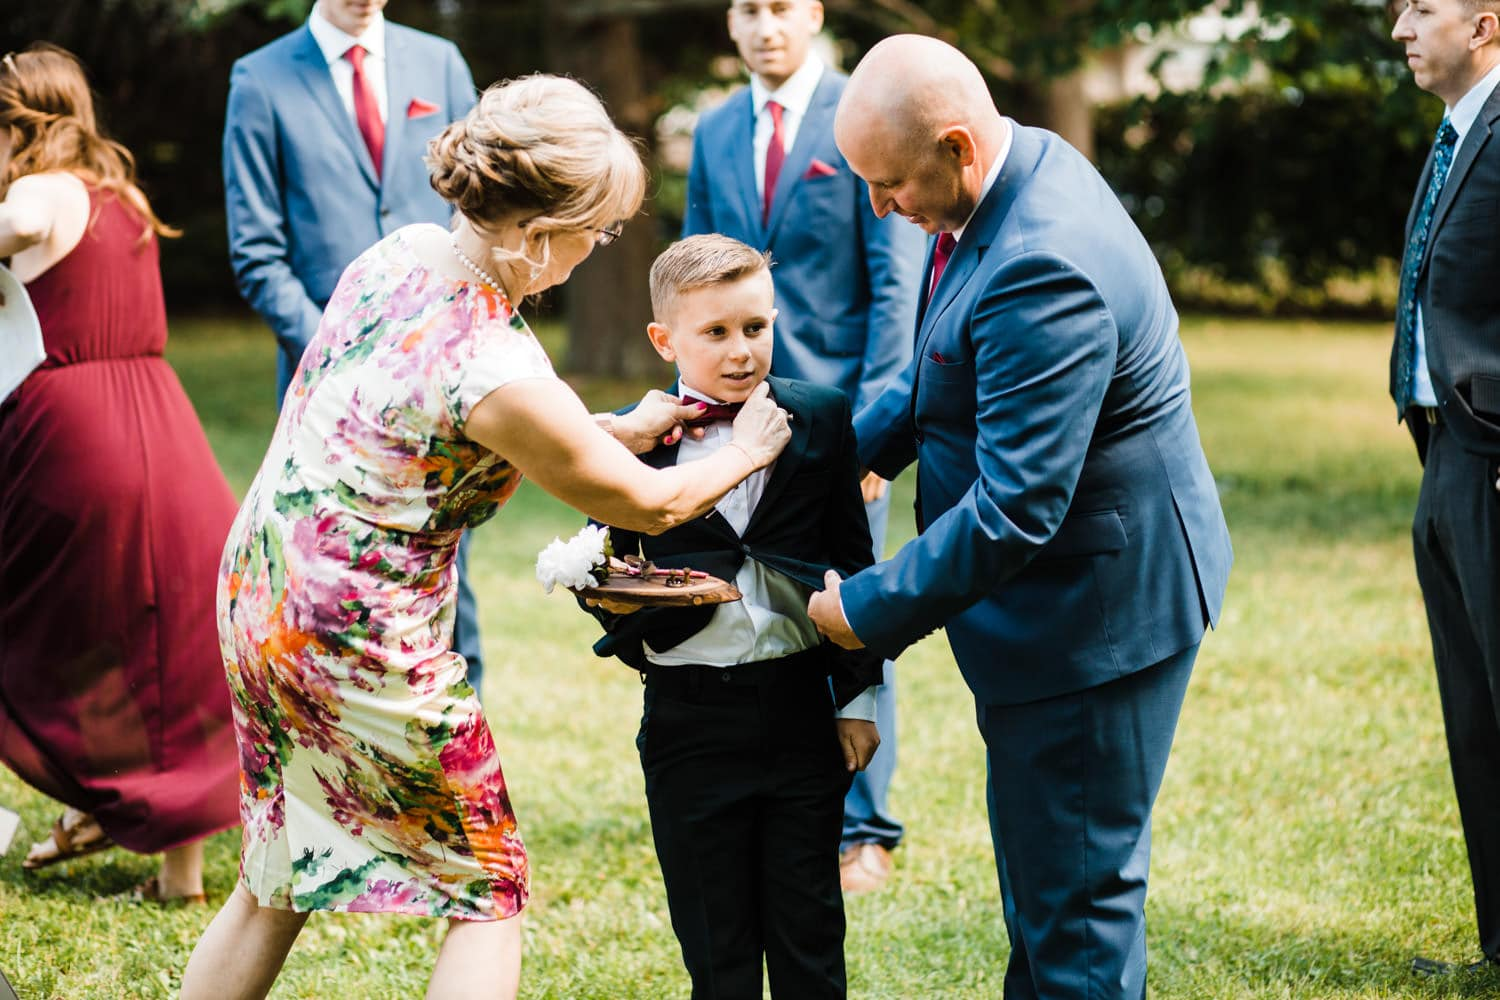 man and woman help adjust ring bearer's suit before wedding ceremony - glebe community centre wedding